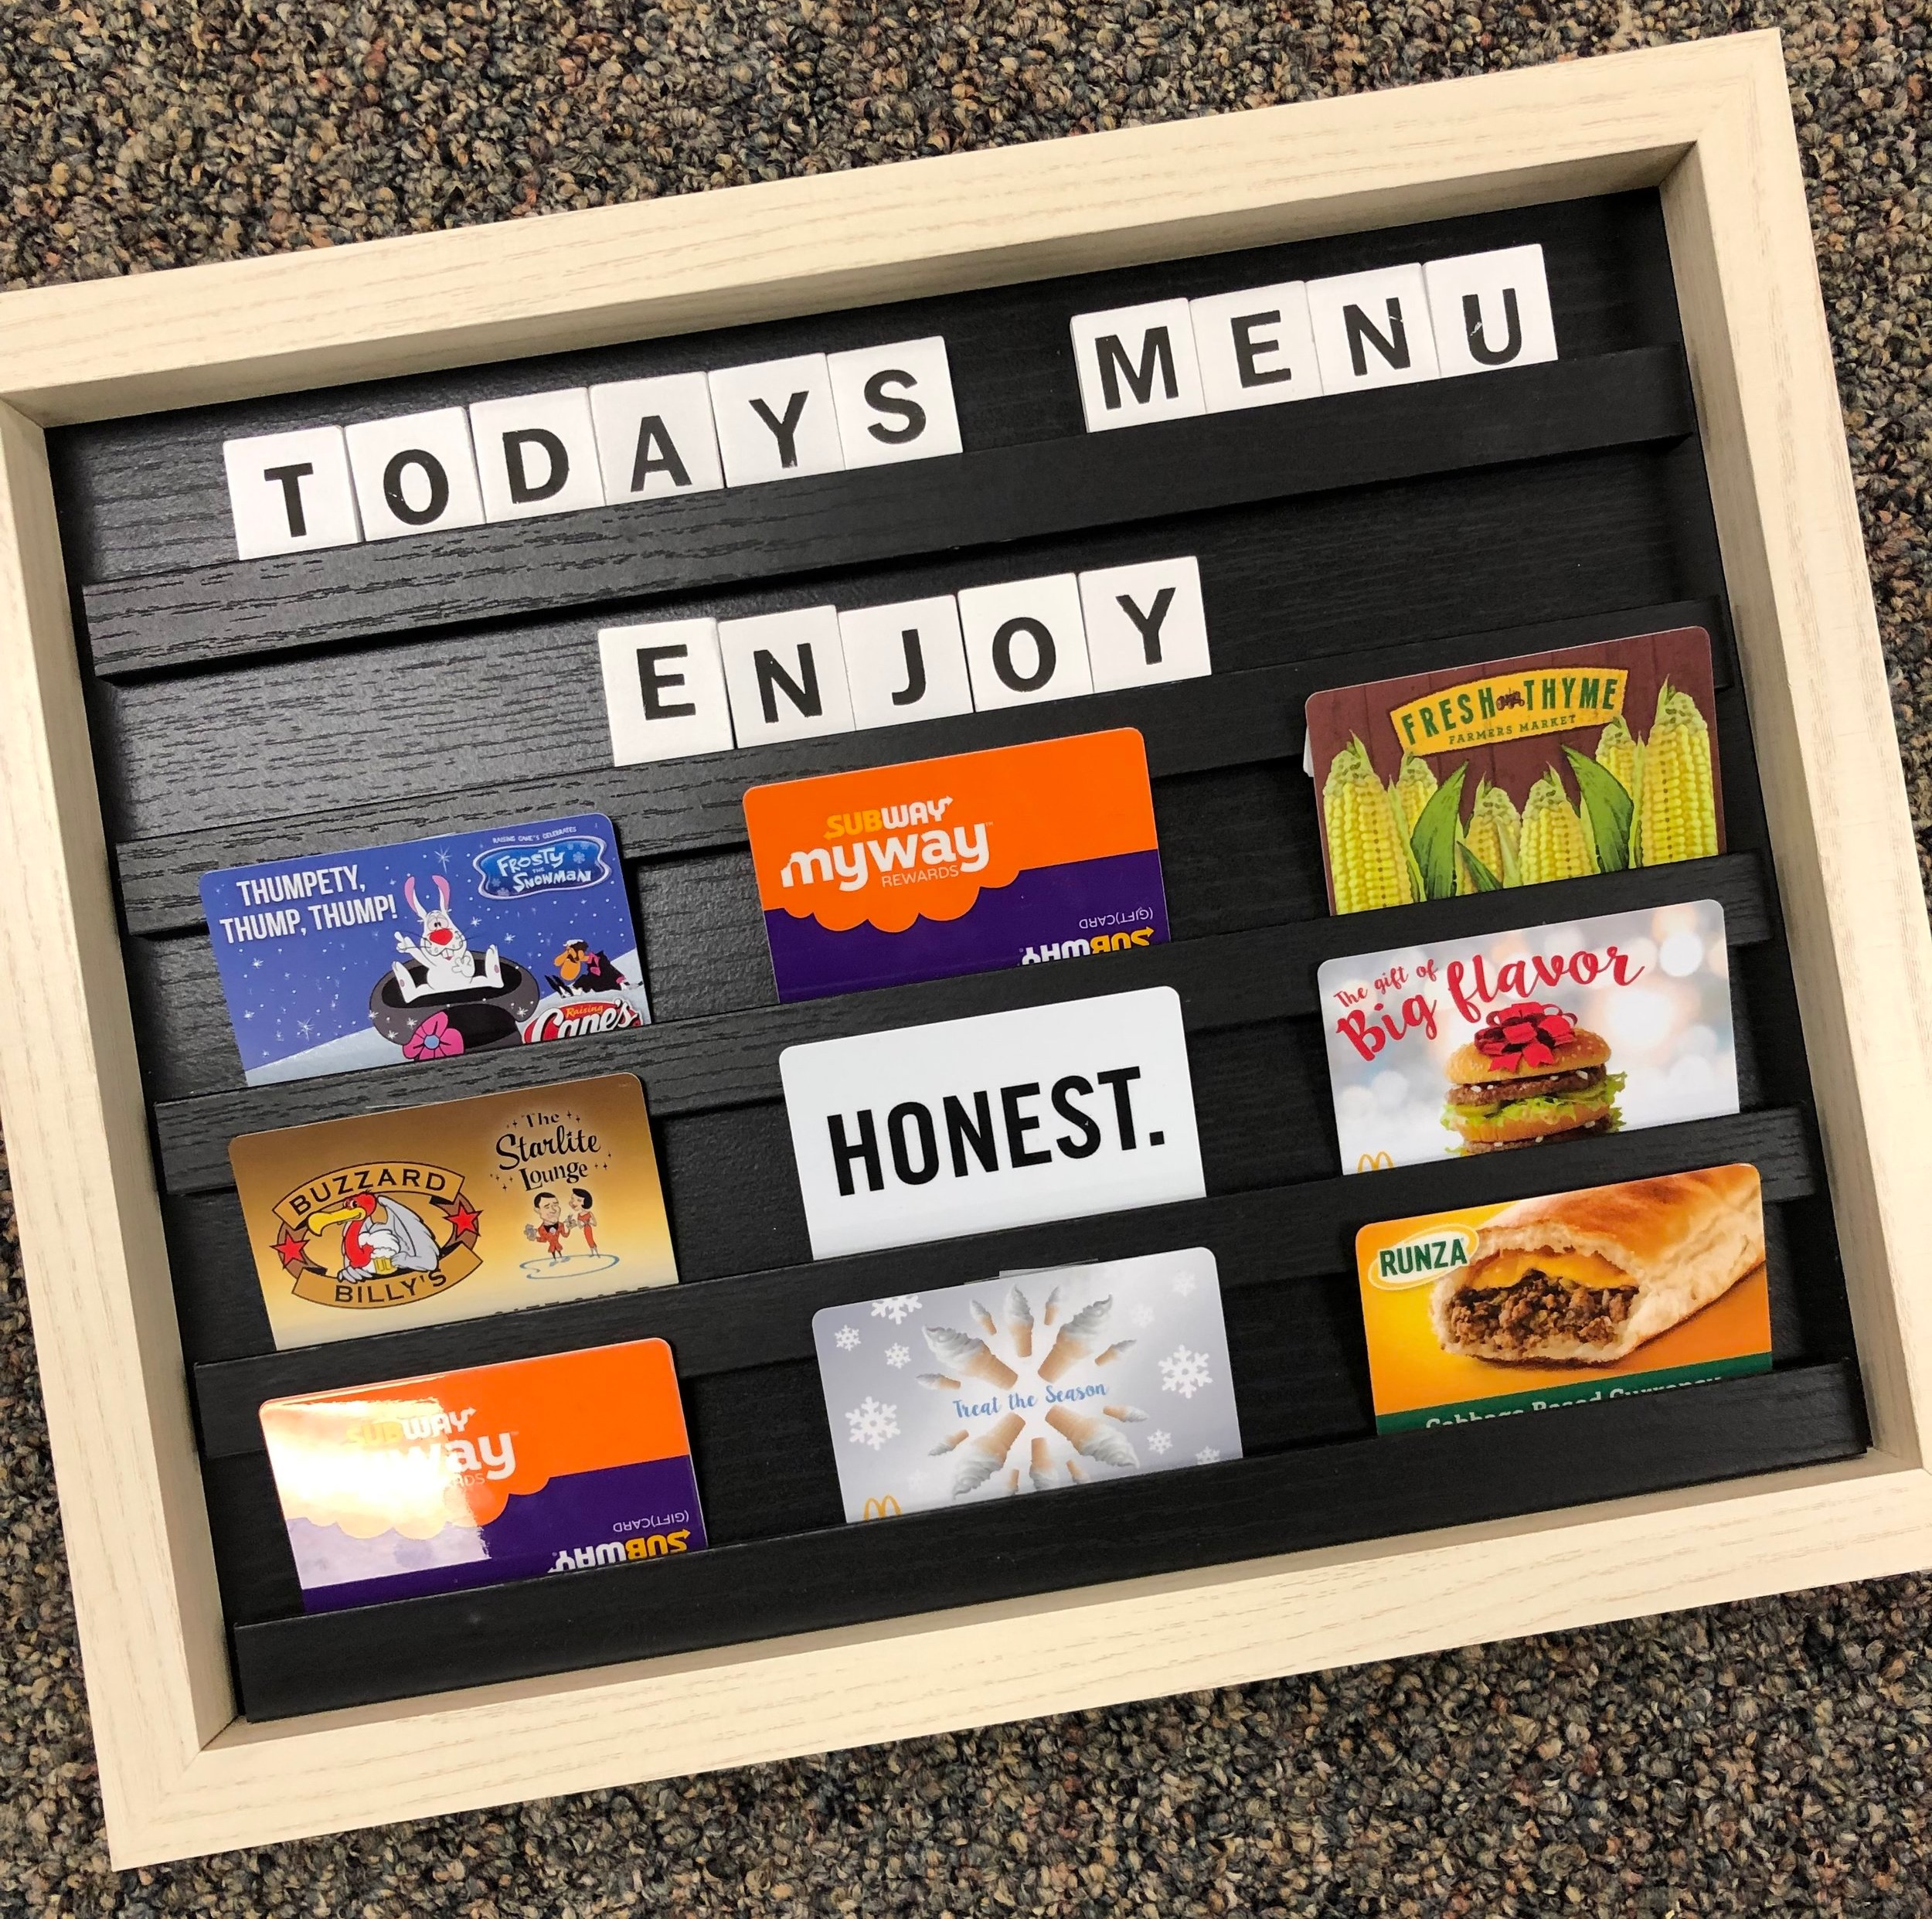 Dinner on the go. - Low on groceries? Short on time? Just plain tired? This cute message board comes filled with gift cards to keep your family fed.